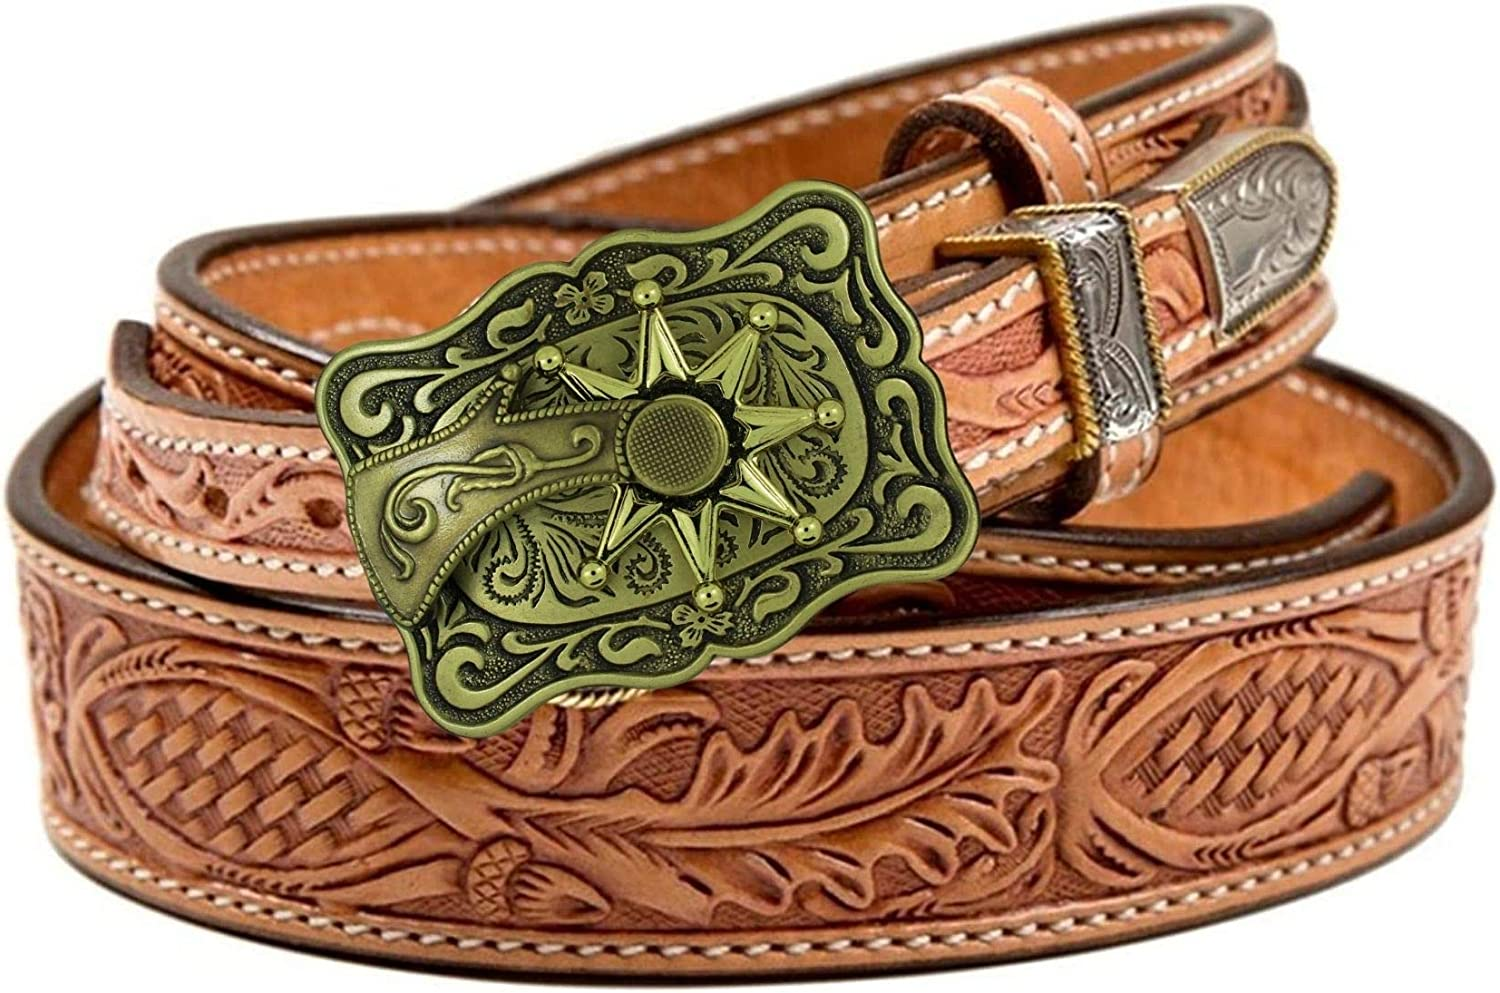 Rodeo Belt Buckles for Men Western Apparel Rectangular Bronze with Movable Spur 3.5 x 2.5 Inches